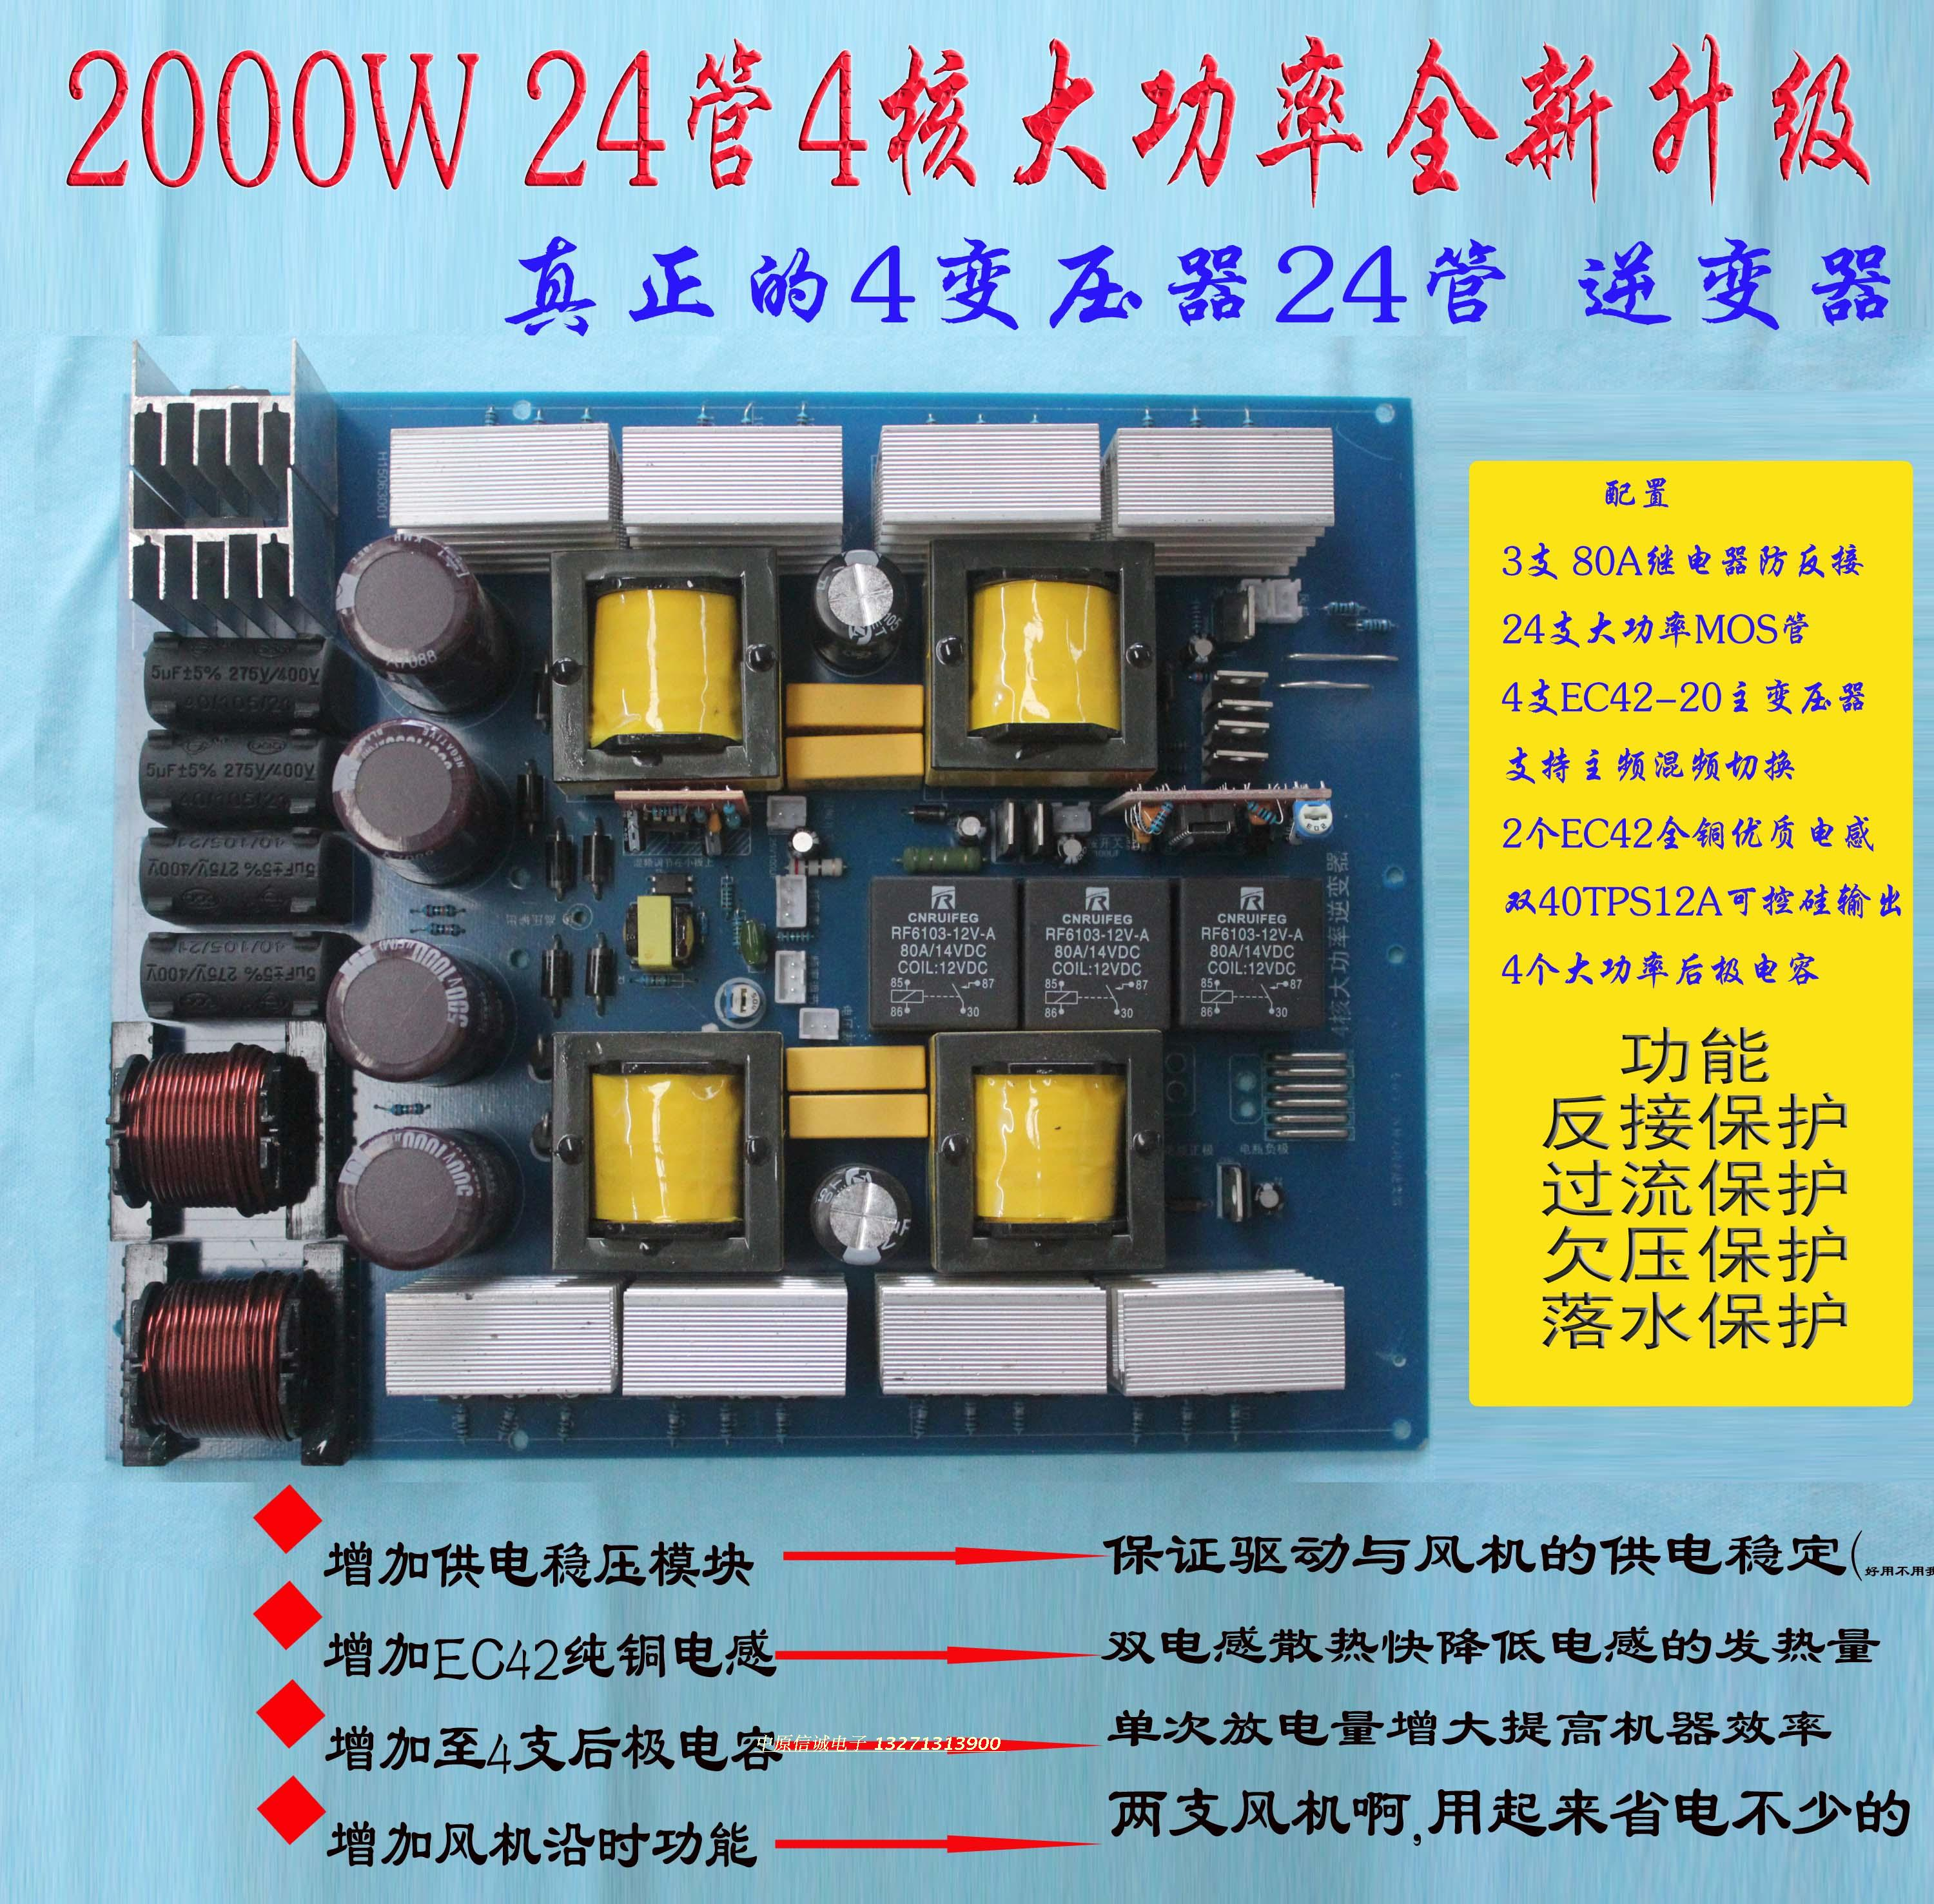 High power 4 core double silicon 24 tube boost kit 2000WDIY inverter 12v battery converter parts